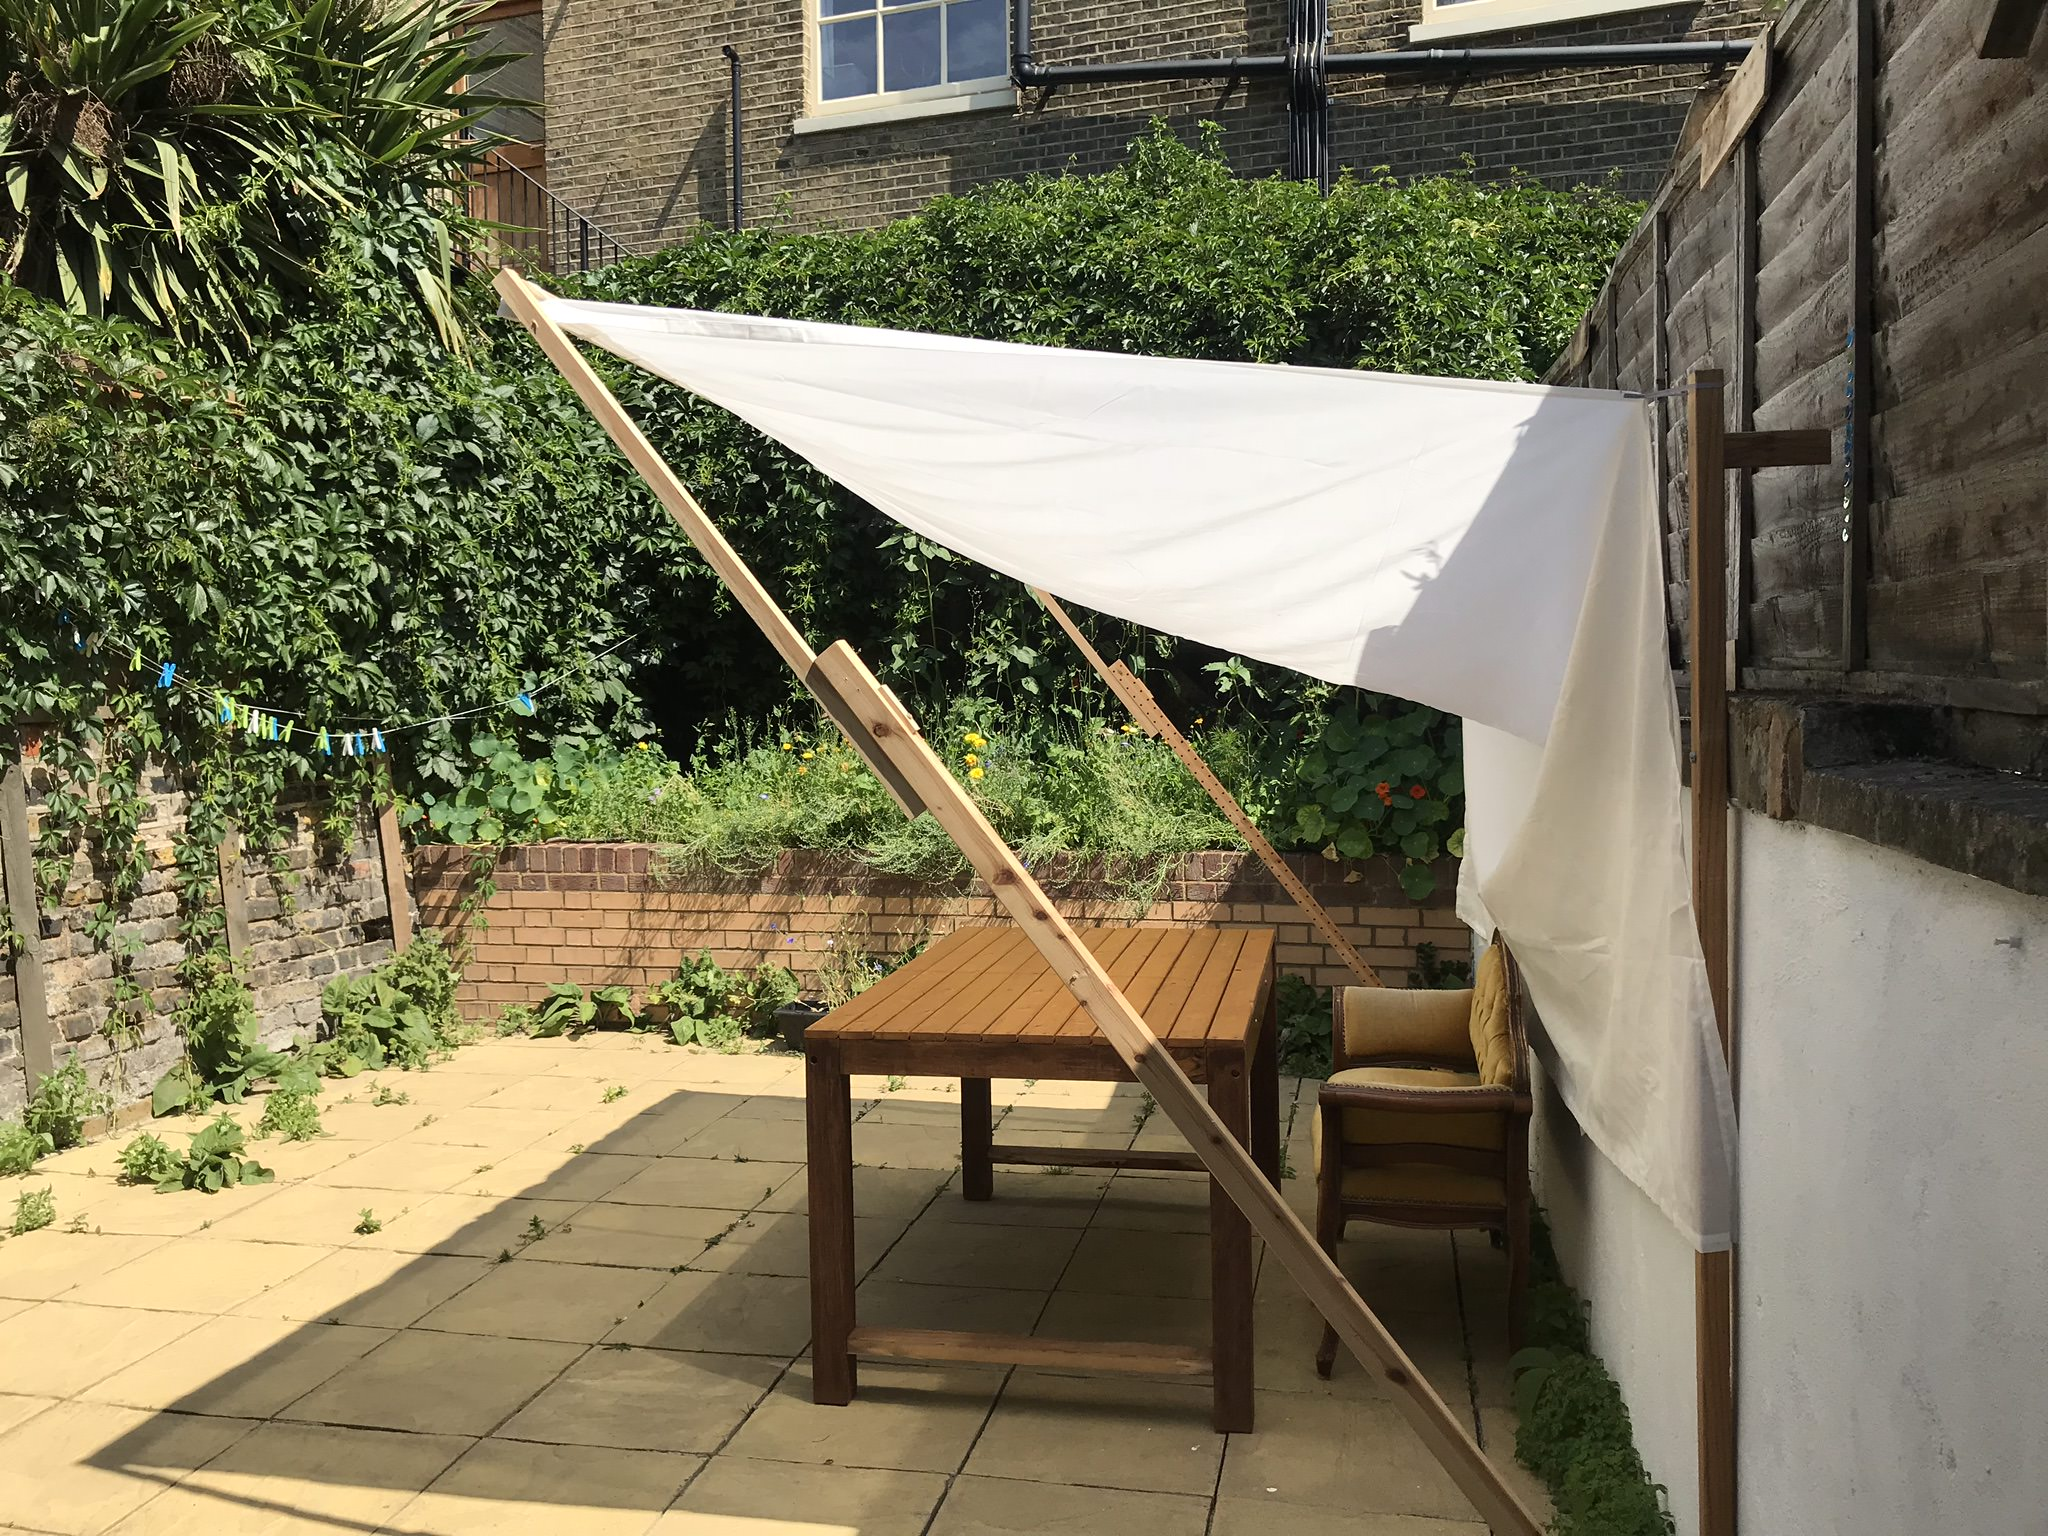 Garden view with pergola creating shadow